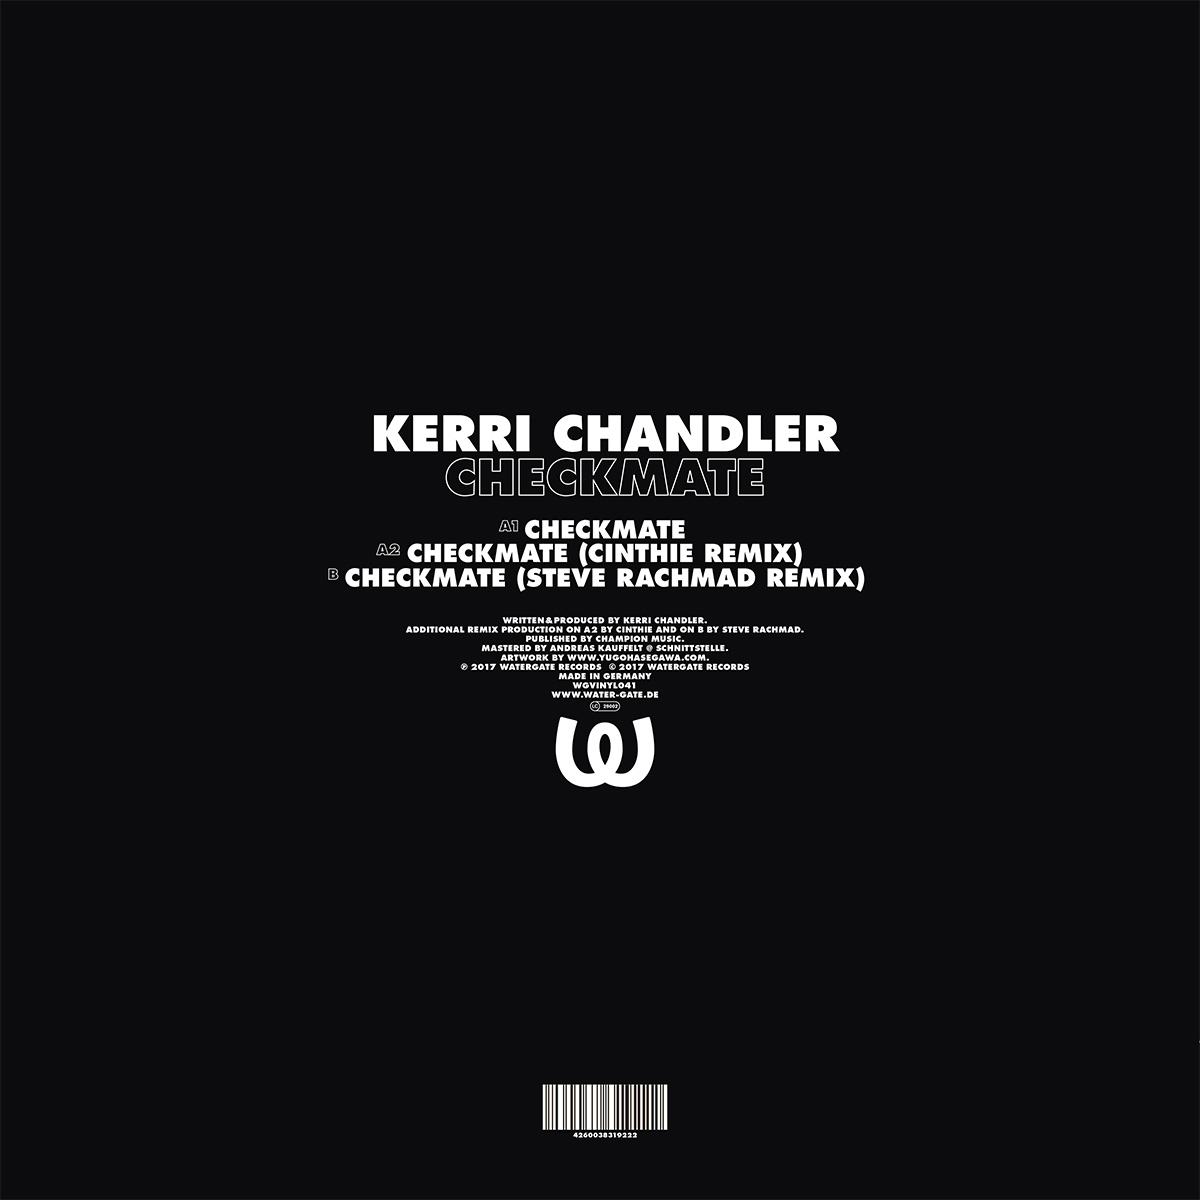 Kerri Chandler Checkmate